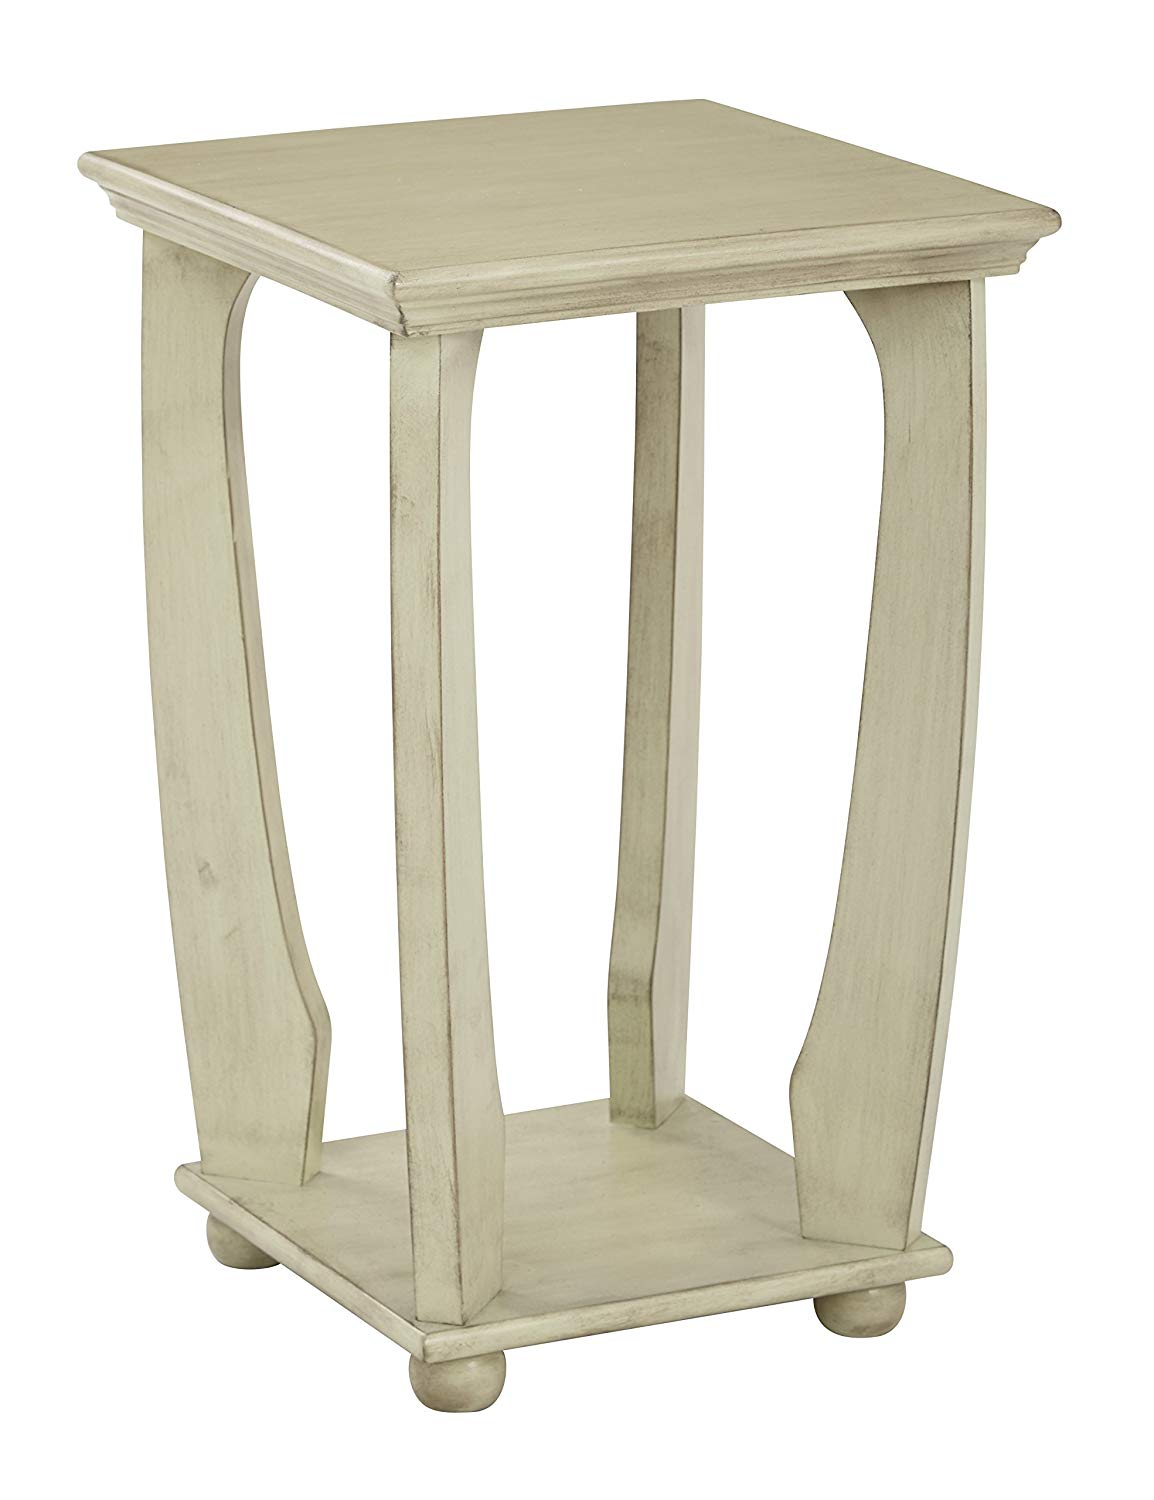 office star mila hand painted square accent table antique celadon finish kitchen dining pottery barn round glass coffee door room target corner desk pedestal foyer wood metal end